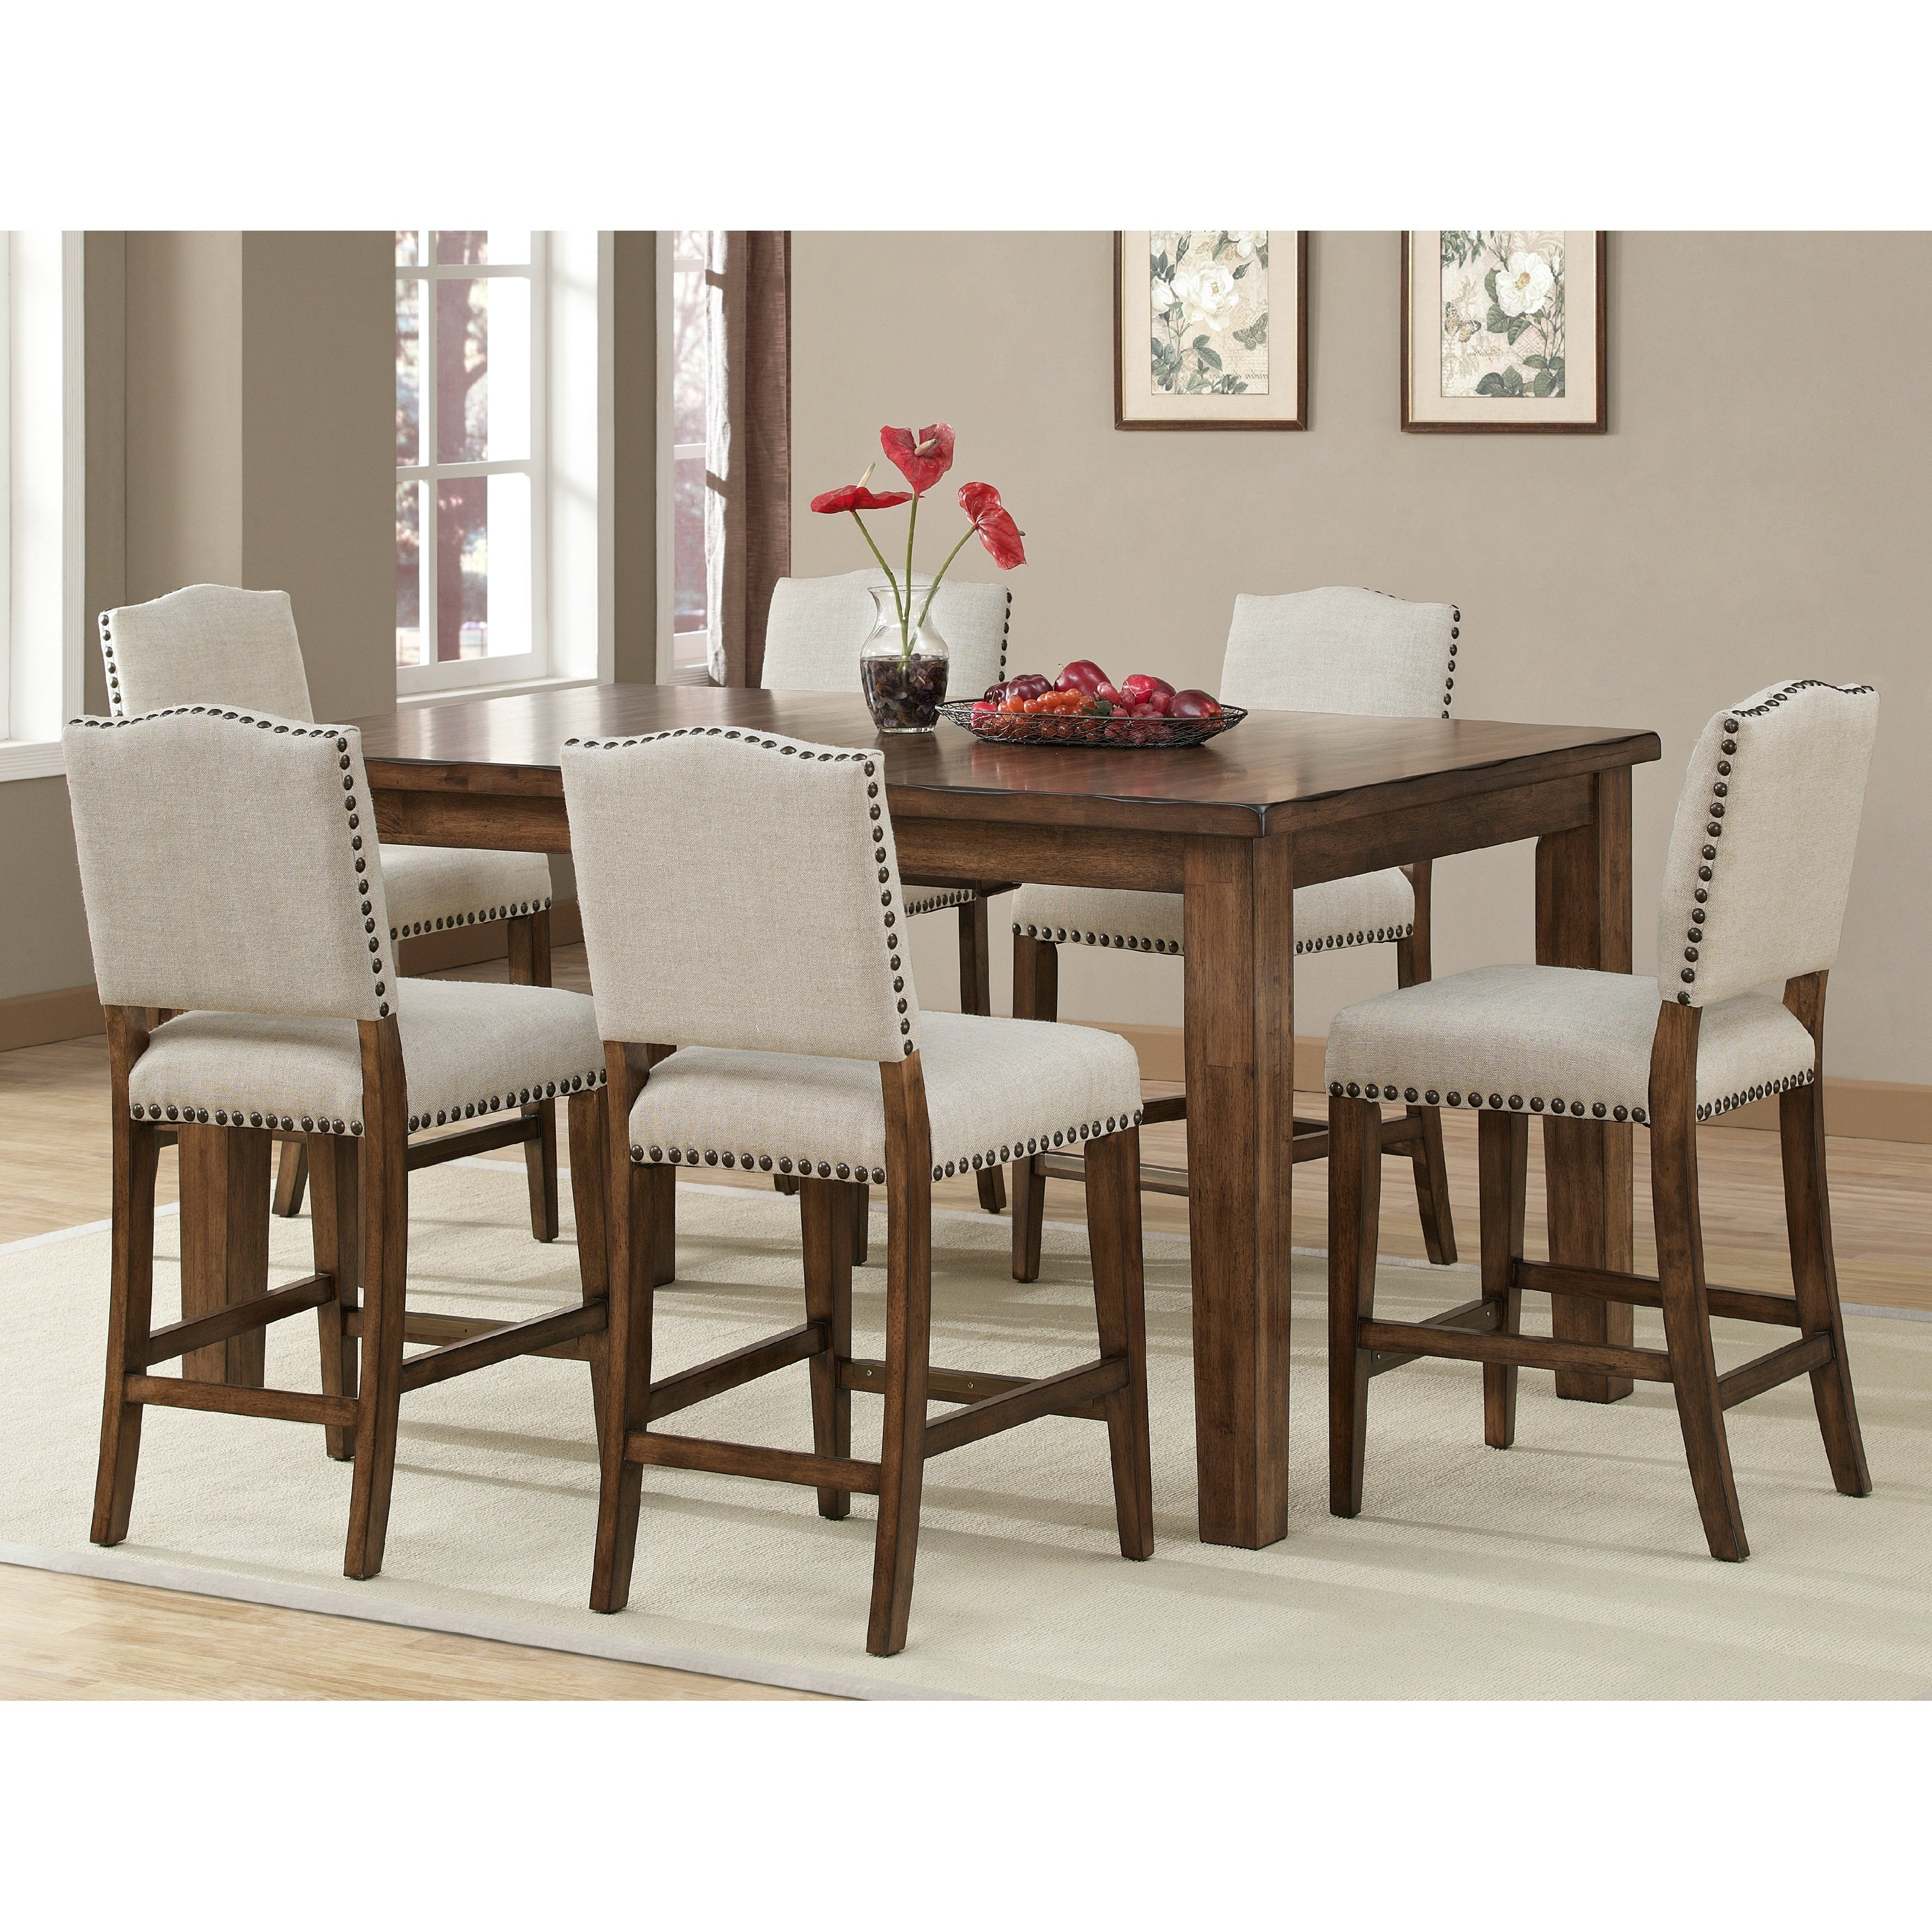 Preferred Jaxon 5 Piece Extension Round Dining Sets With Wood Chairs With Ahb Cameo Counter Height Dining Table In Coastal Grey (View 16 of 25)